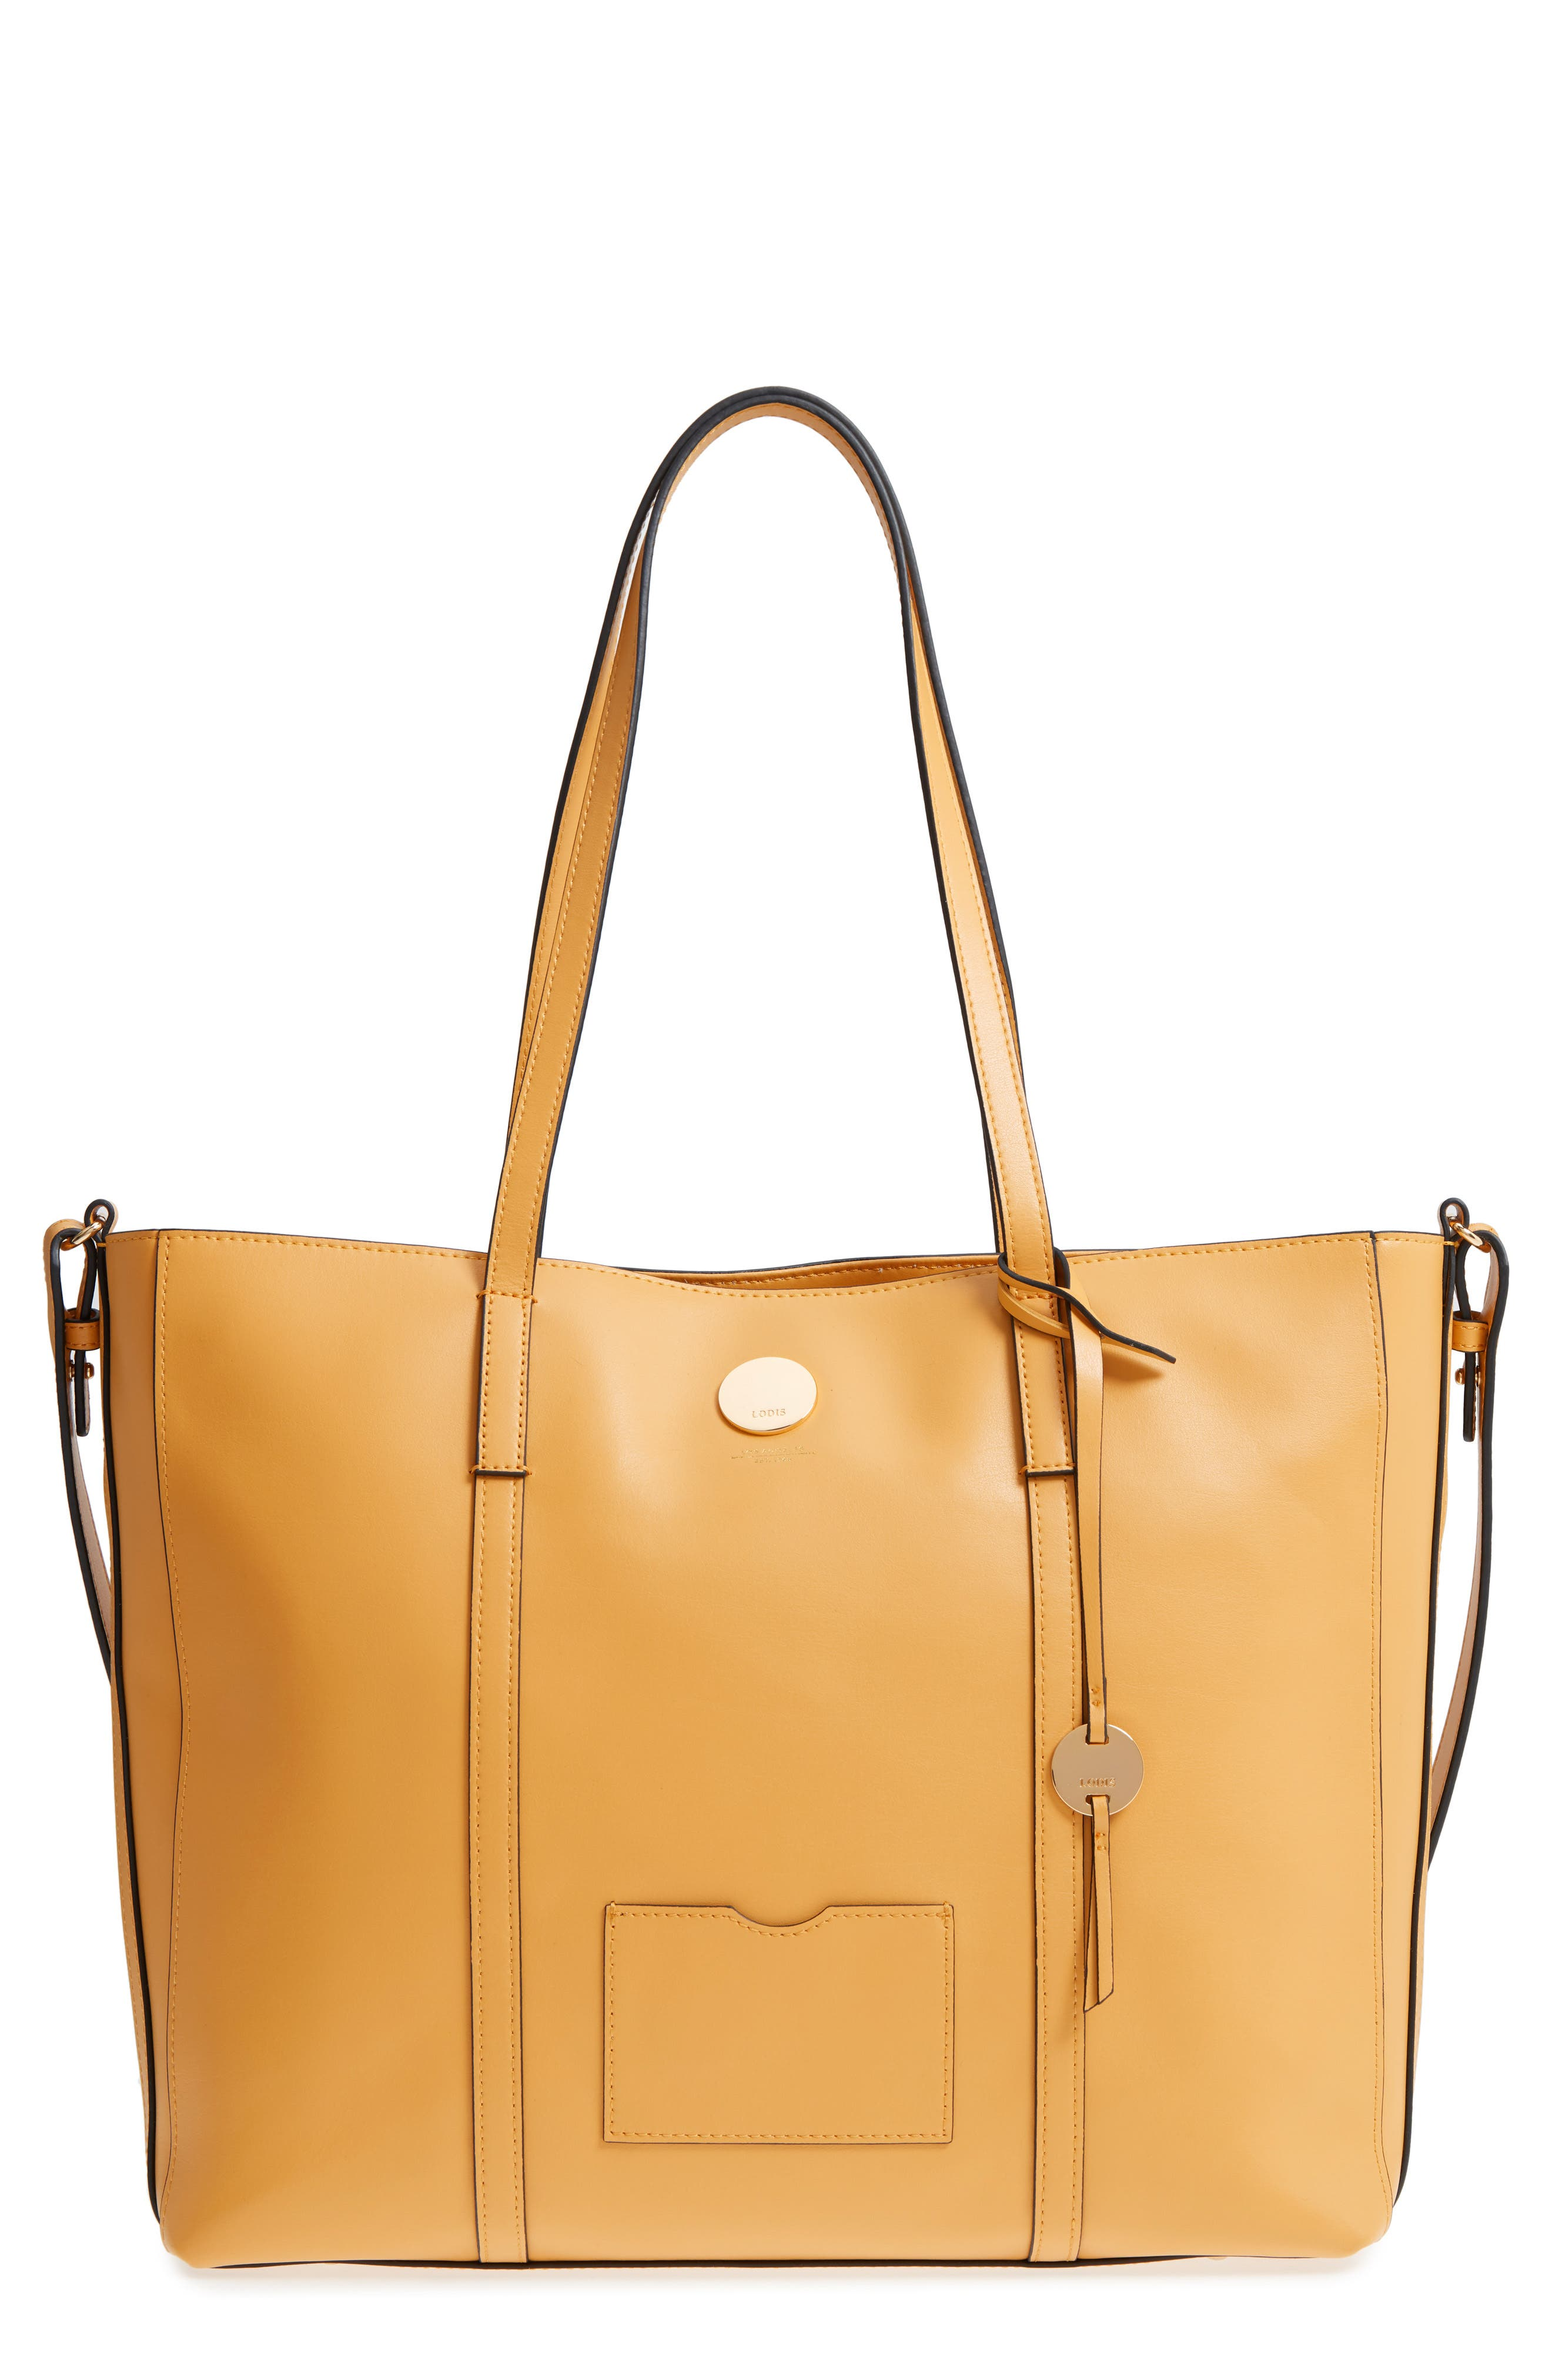 Nelly RFID Medium Leather Tote,                         Main,                         color, Yellow